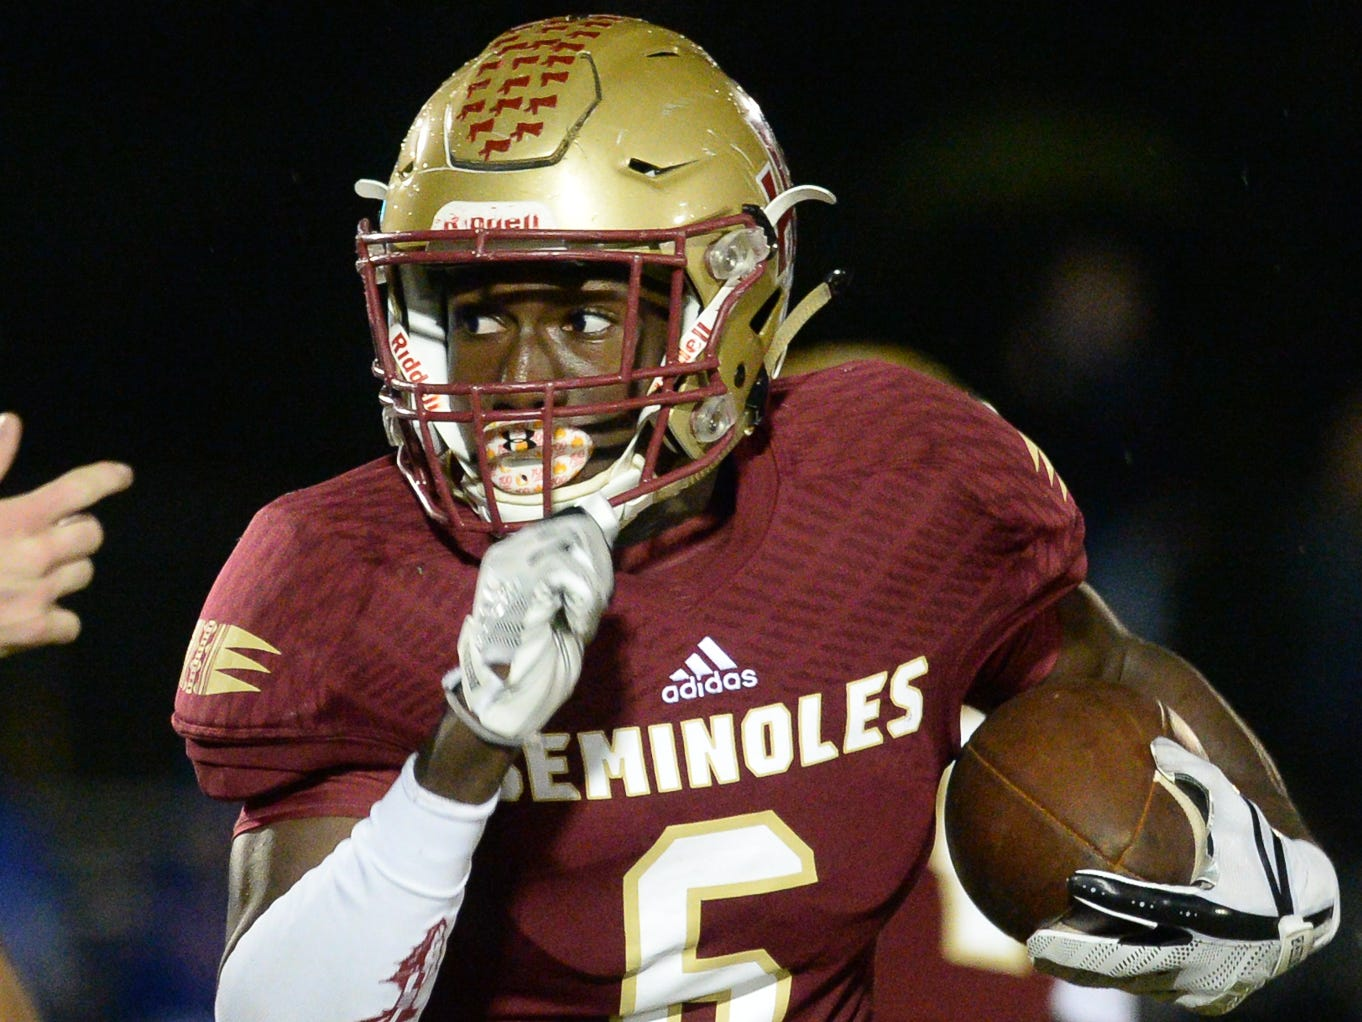 Florida High A. Menjor (6) carries the ball during the King's Academy Lions vs. Florida High Seminoles, Class 3A state semifinal, Tallahassee, FL, Nov. 30, 2018.